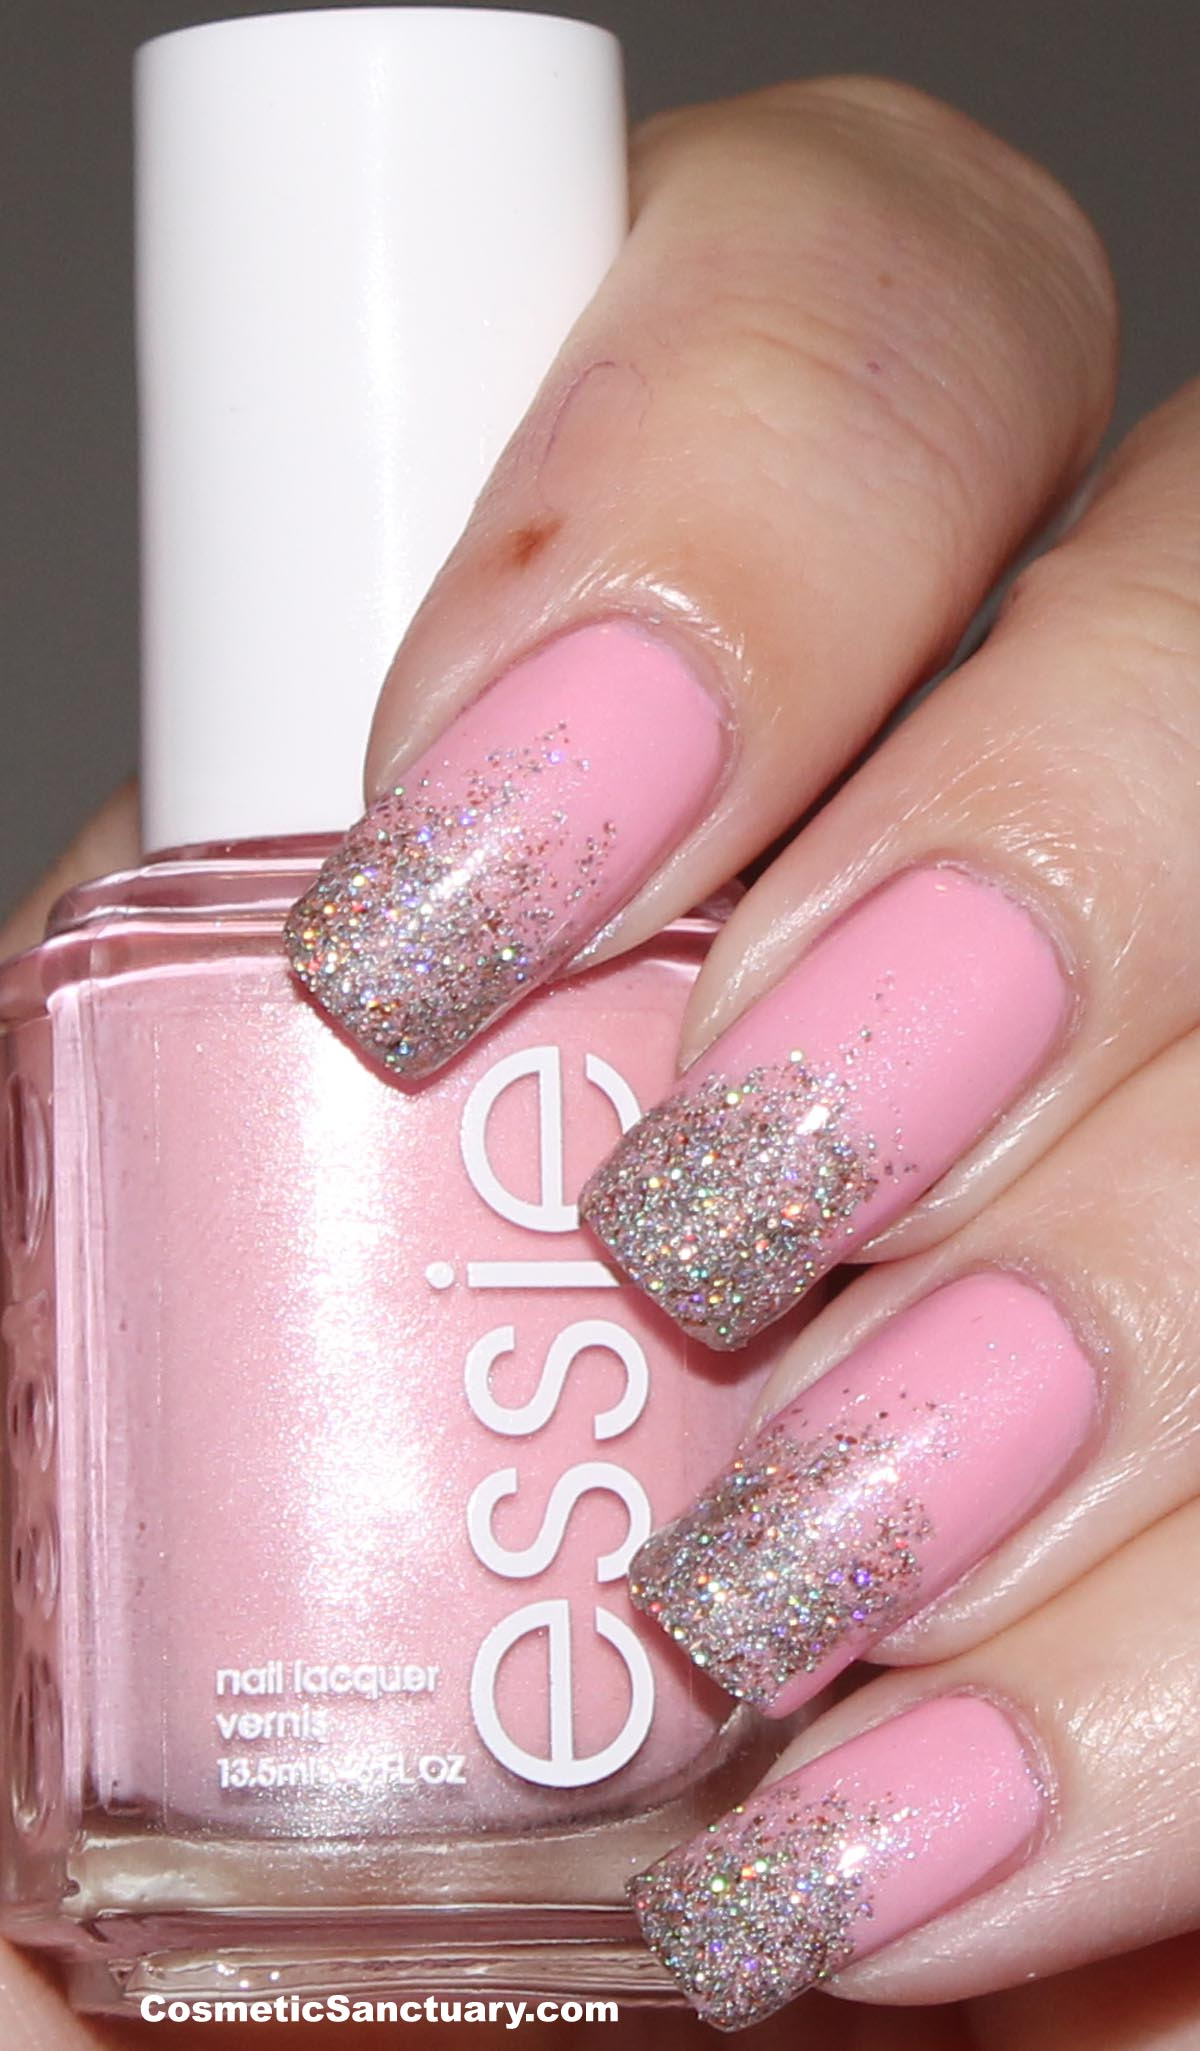 Go Pink Wednesday with Essie and butter LONDON!